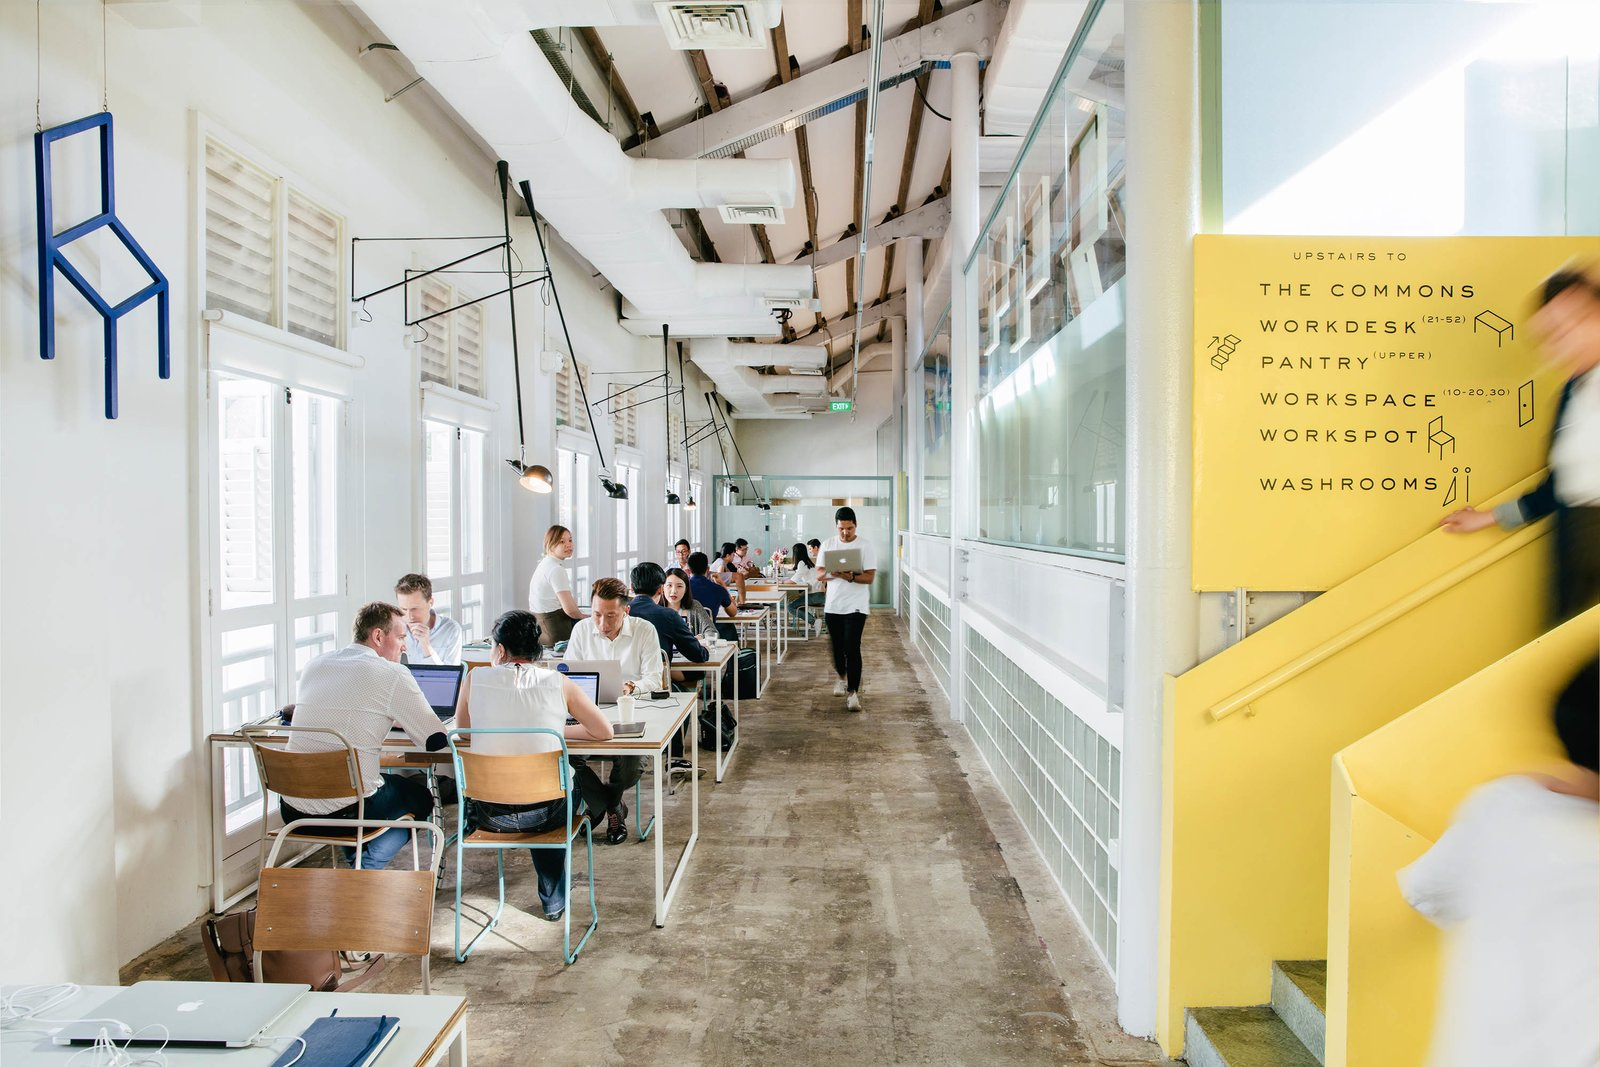 Photo 1 of 11 in These 6 Collaborative Coworking Spaces Will Give you Serious Office Envy